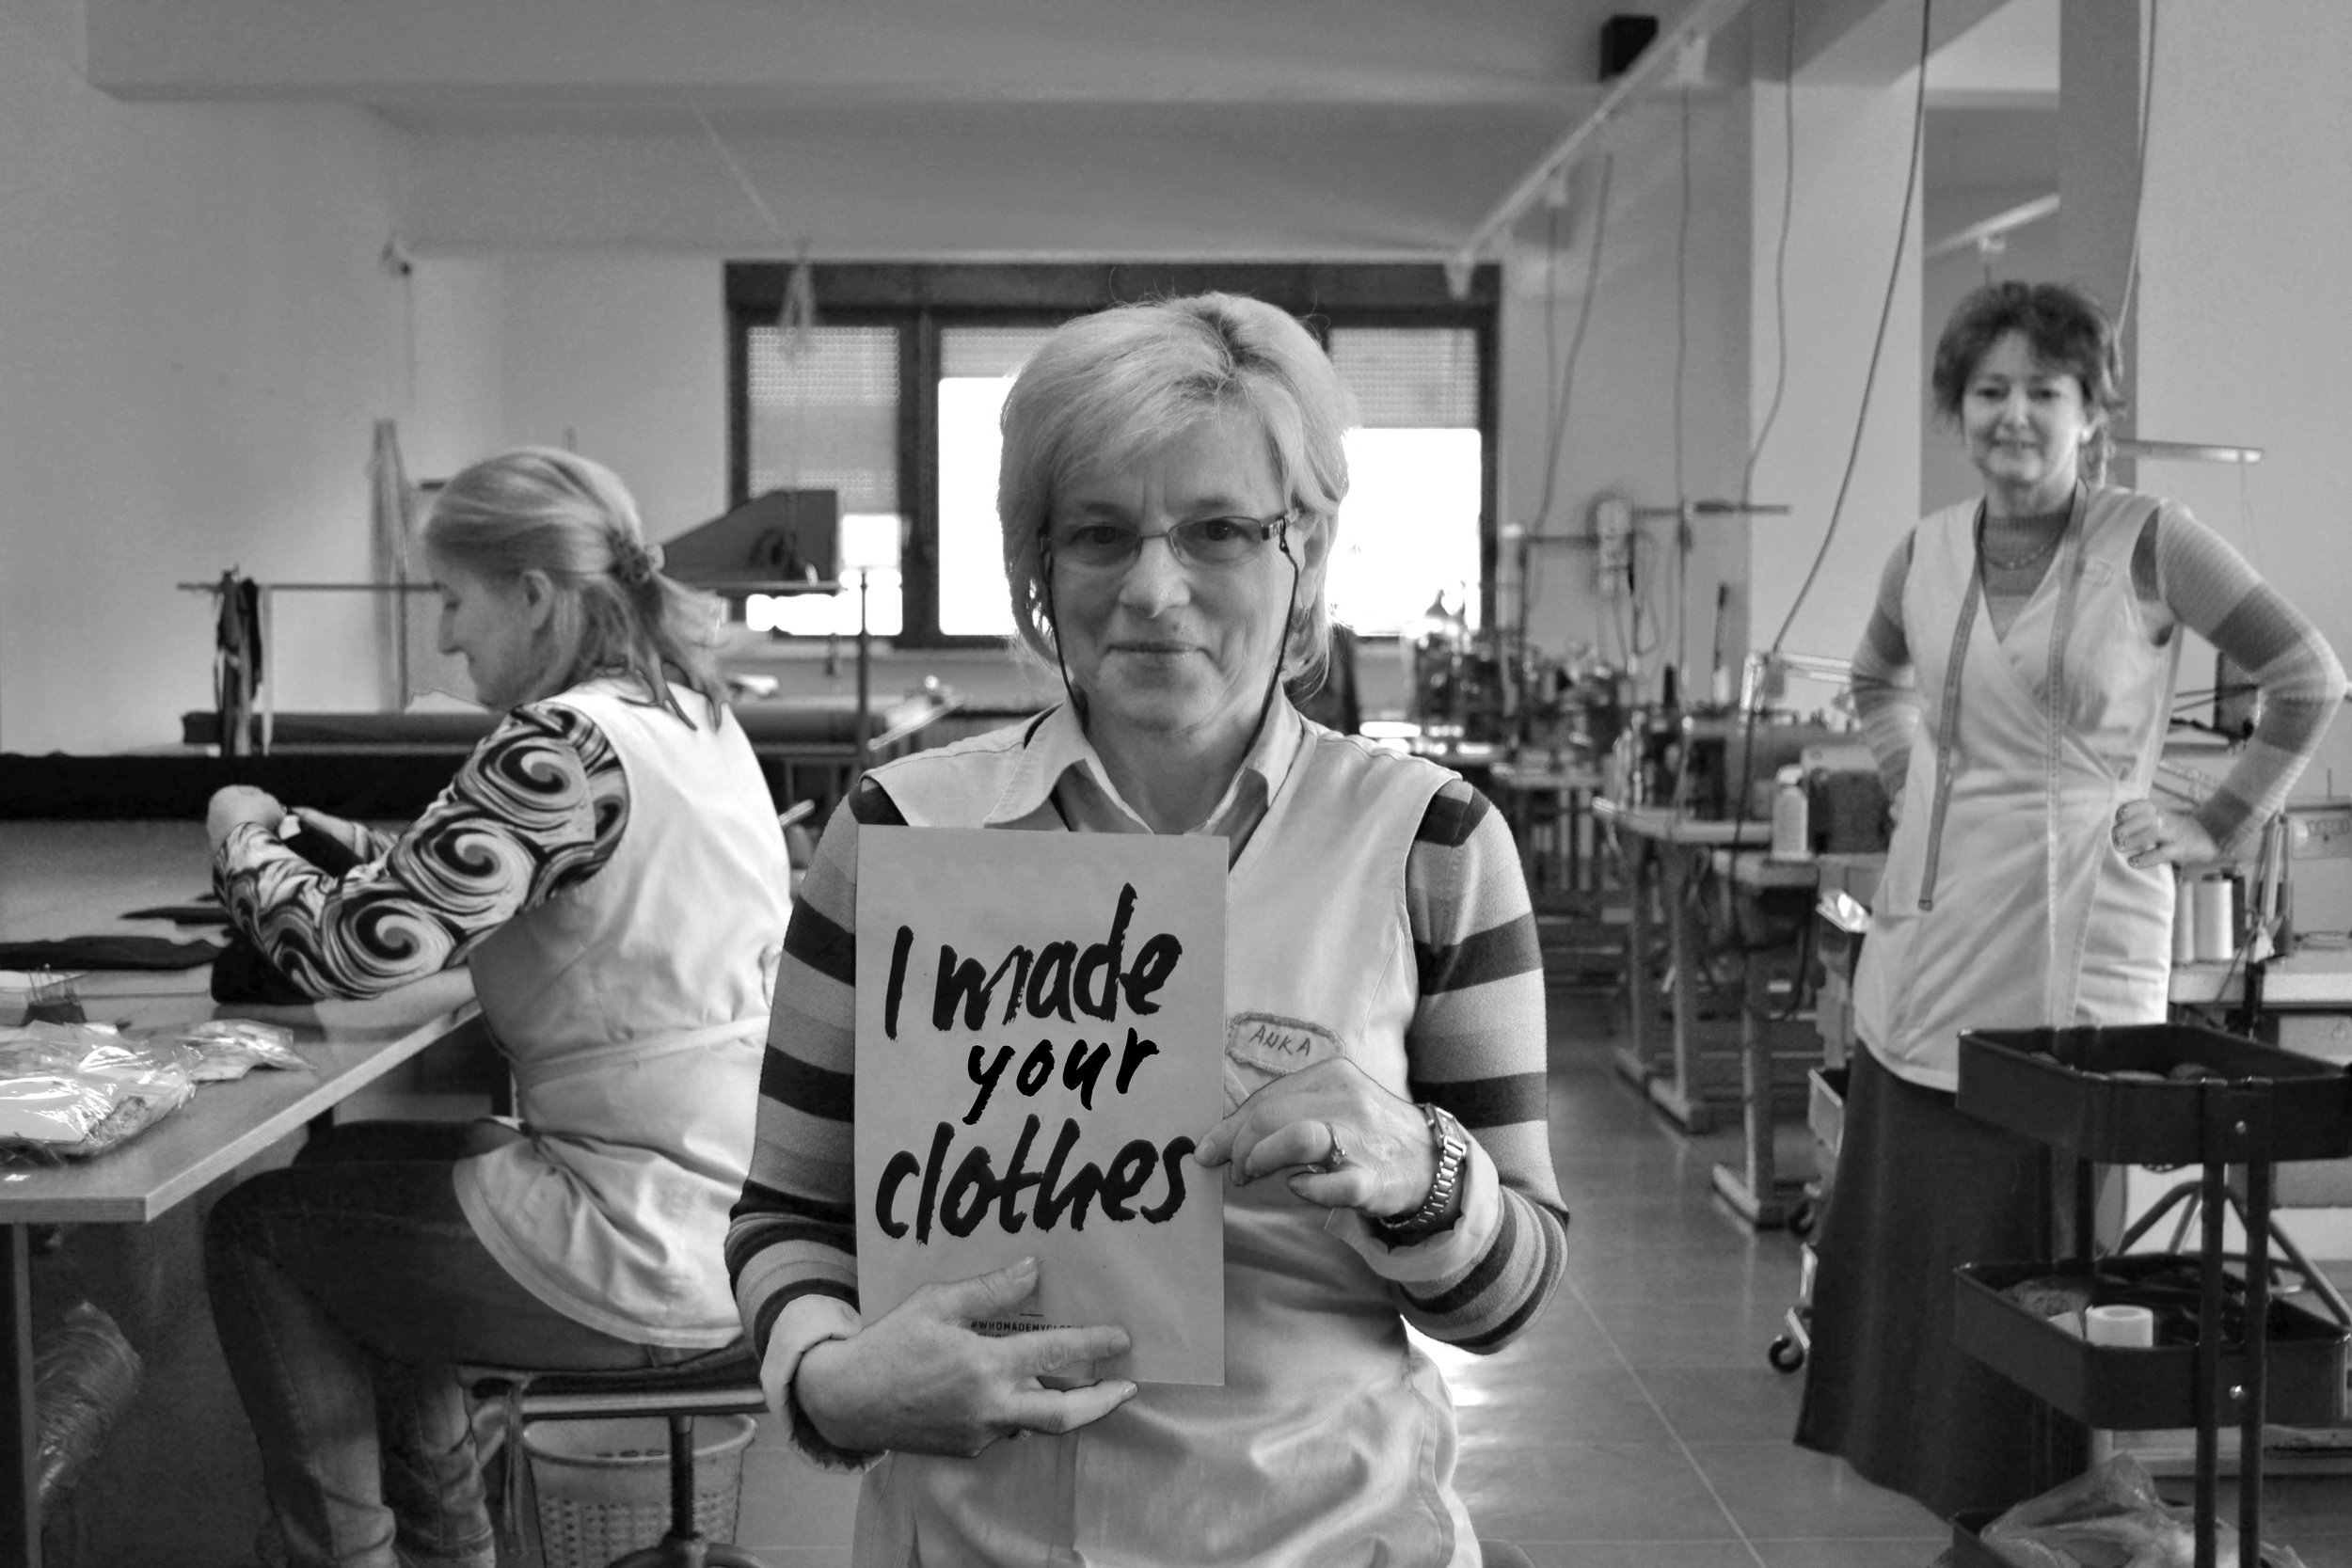 Imadeyourclothes_03_BW.jpg